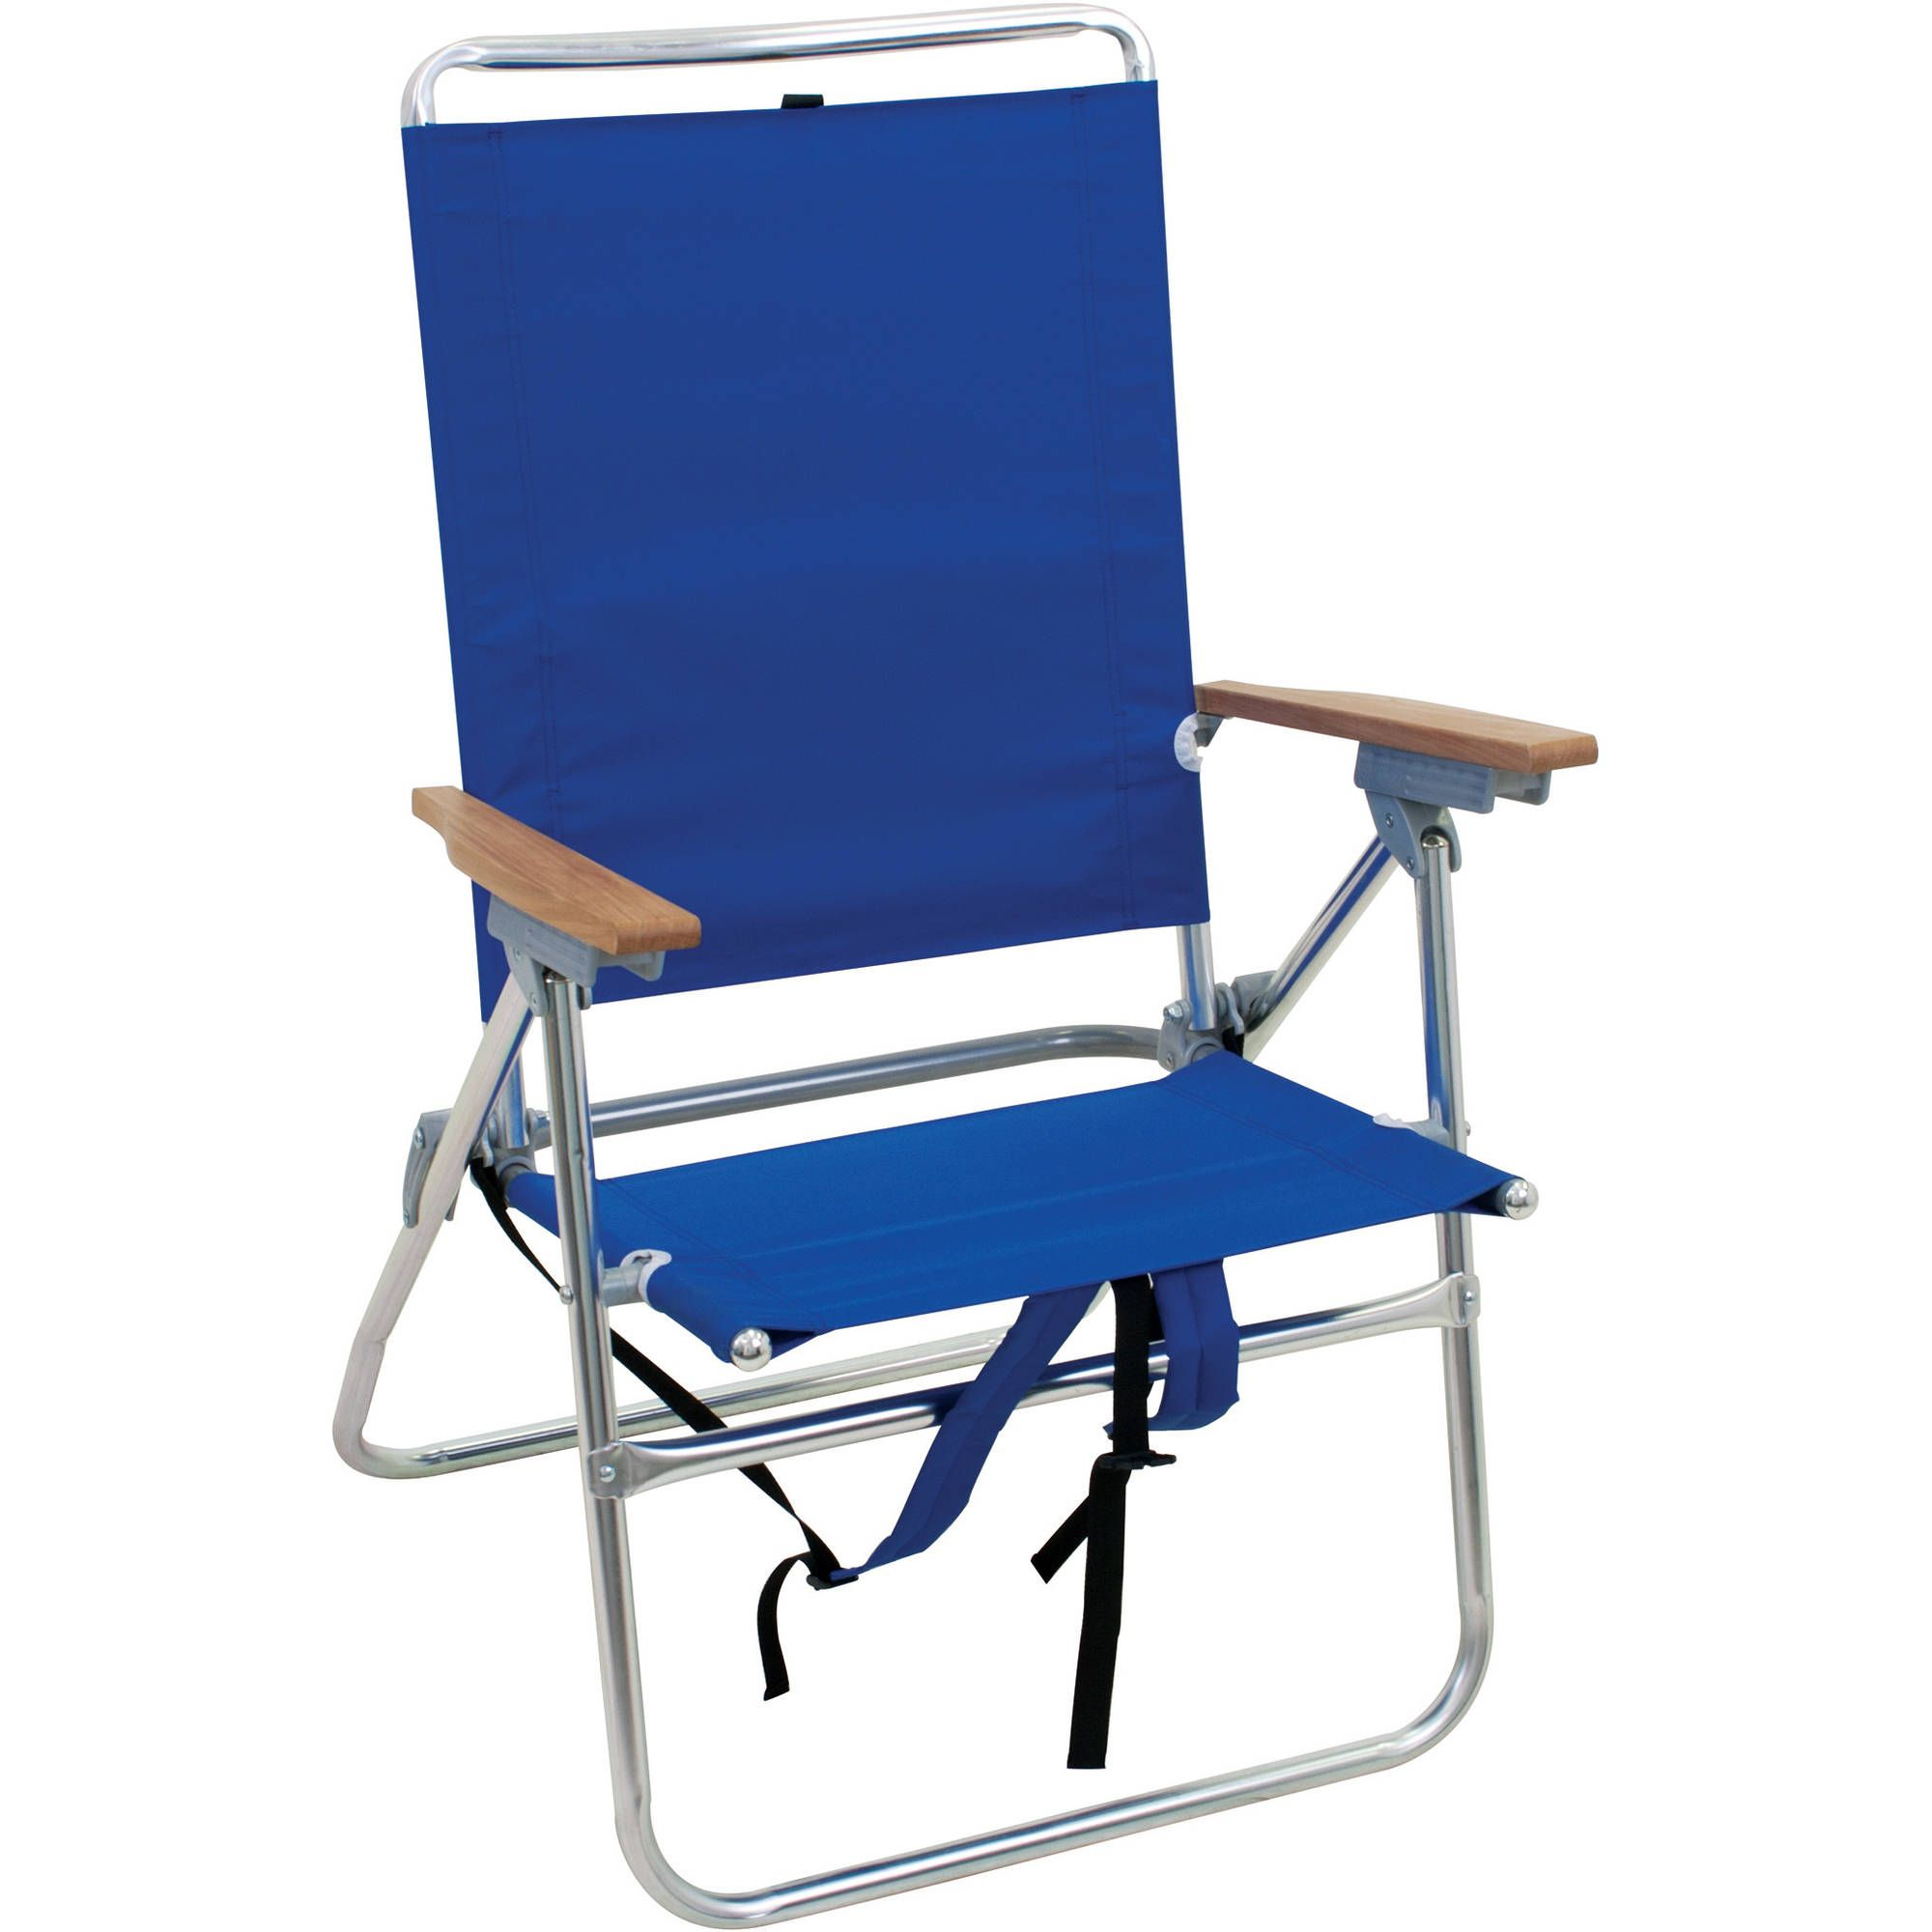 Beach lounge chair portable - Long Life Beach Chairs Wholesale Beach Chair In Spain